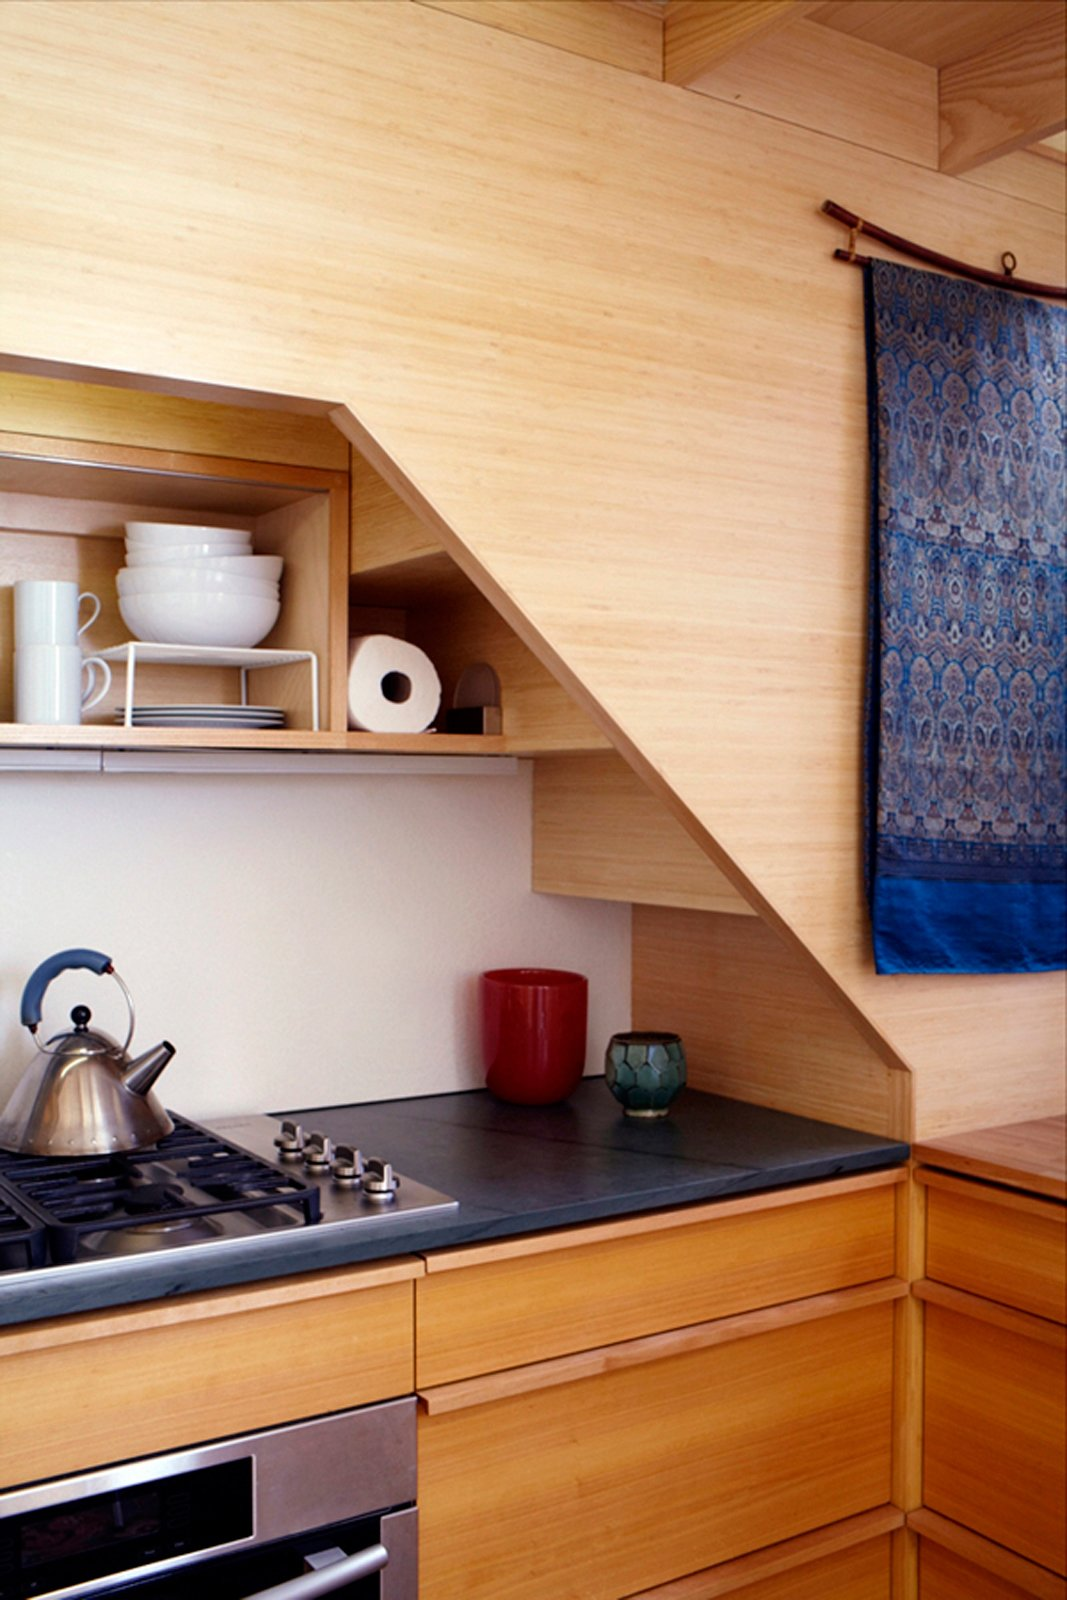 Inspired by mid-century furniture designer George Nakashima, Seggerman crafted the components by hand in his home studio. The cabinetry in the kitchen and shelving in the bedroom seamlessly flow, adding the impression that there is more space. Photo by David Engelhardt. Tagged: Kitchen and Concrete Counter.  Photo 7 of 8 in Space-Saving Wood-Paneled Apartment in Manhattan